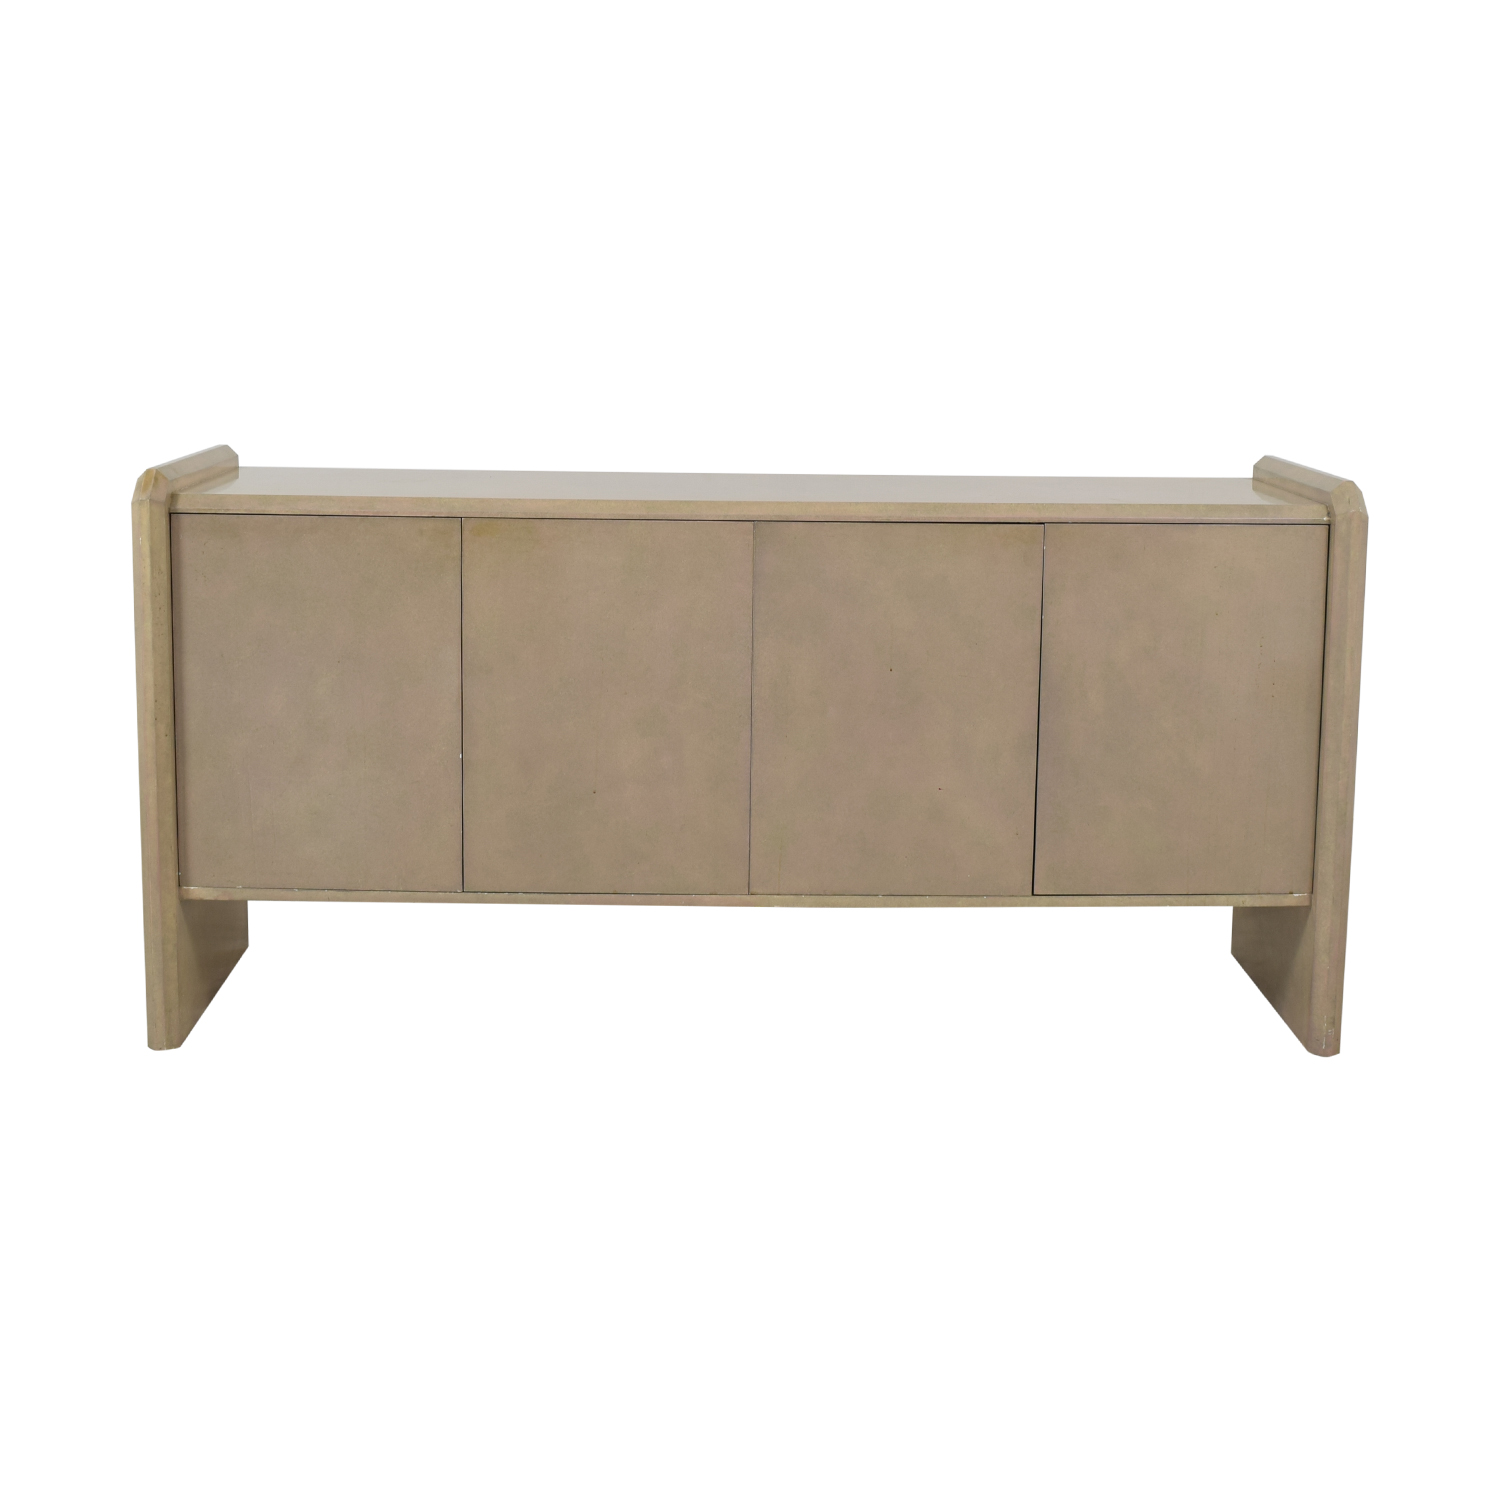 Blush Pink Lacquer Entryway Credenza dimensions